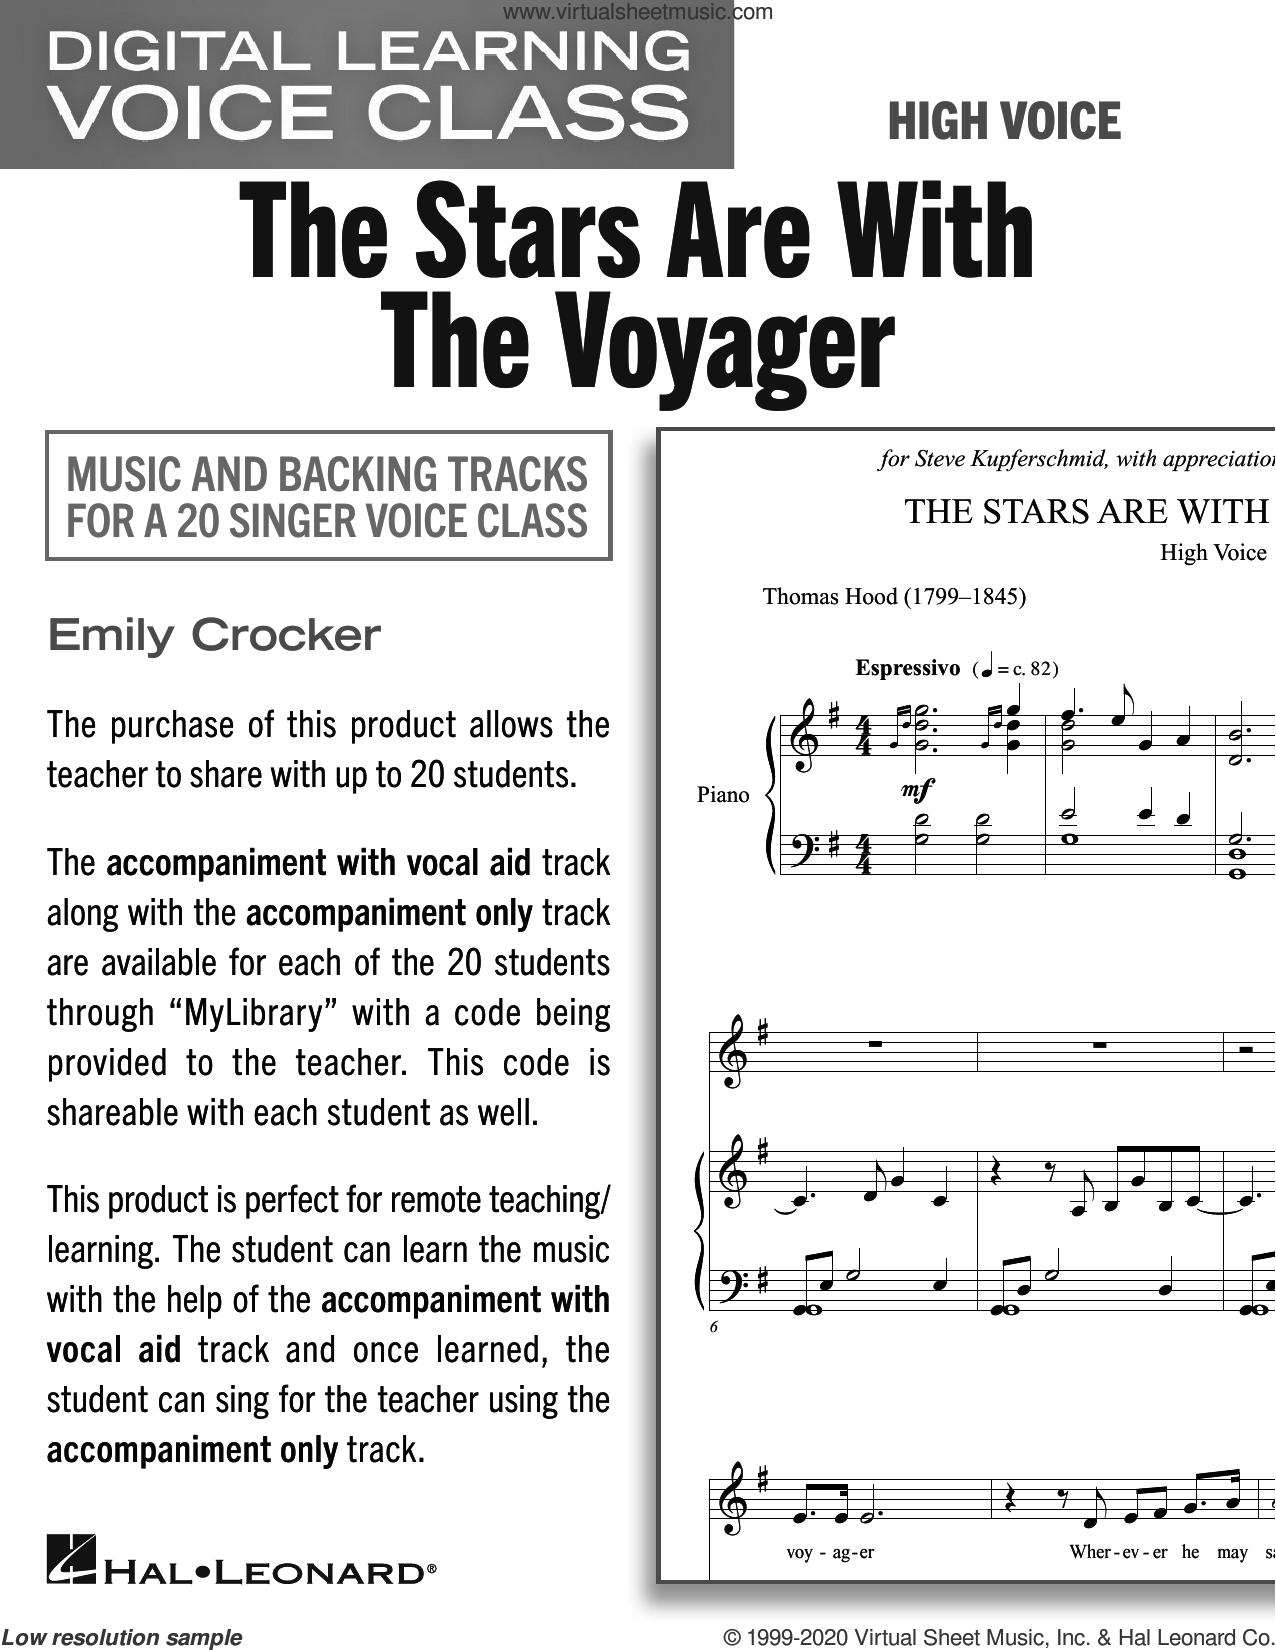 The Stars Are With The Voyager (Medium High Voice) (includes Audio) sheet music for voice and piano (Medium High Voice) by Emily Crocker and Thomas Hood (1799-1845), intermediate skill level